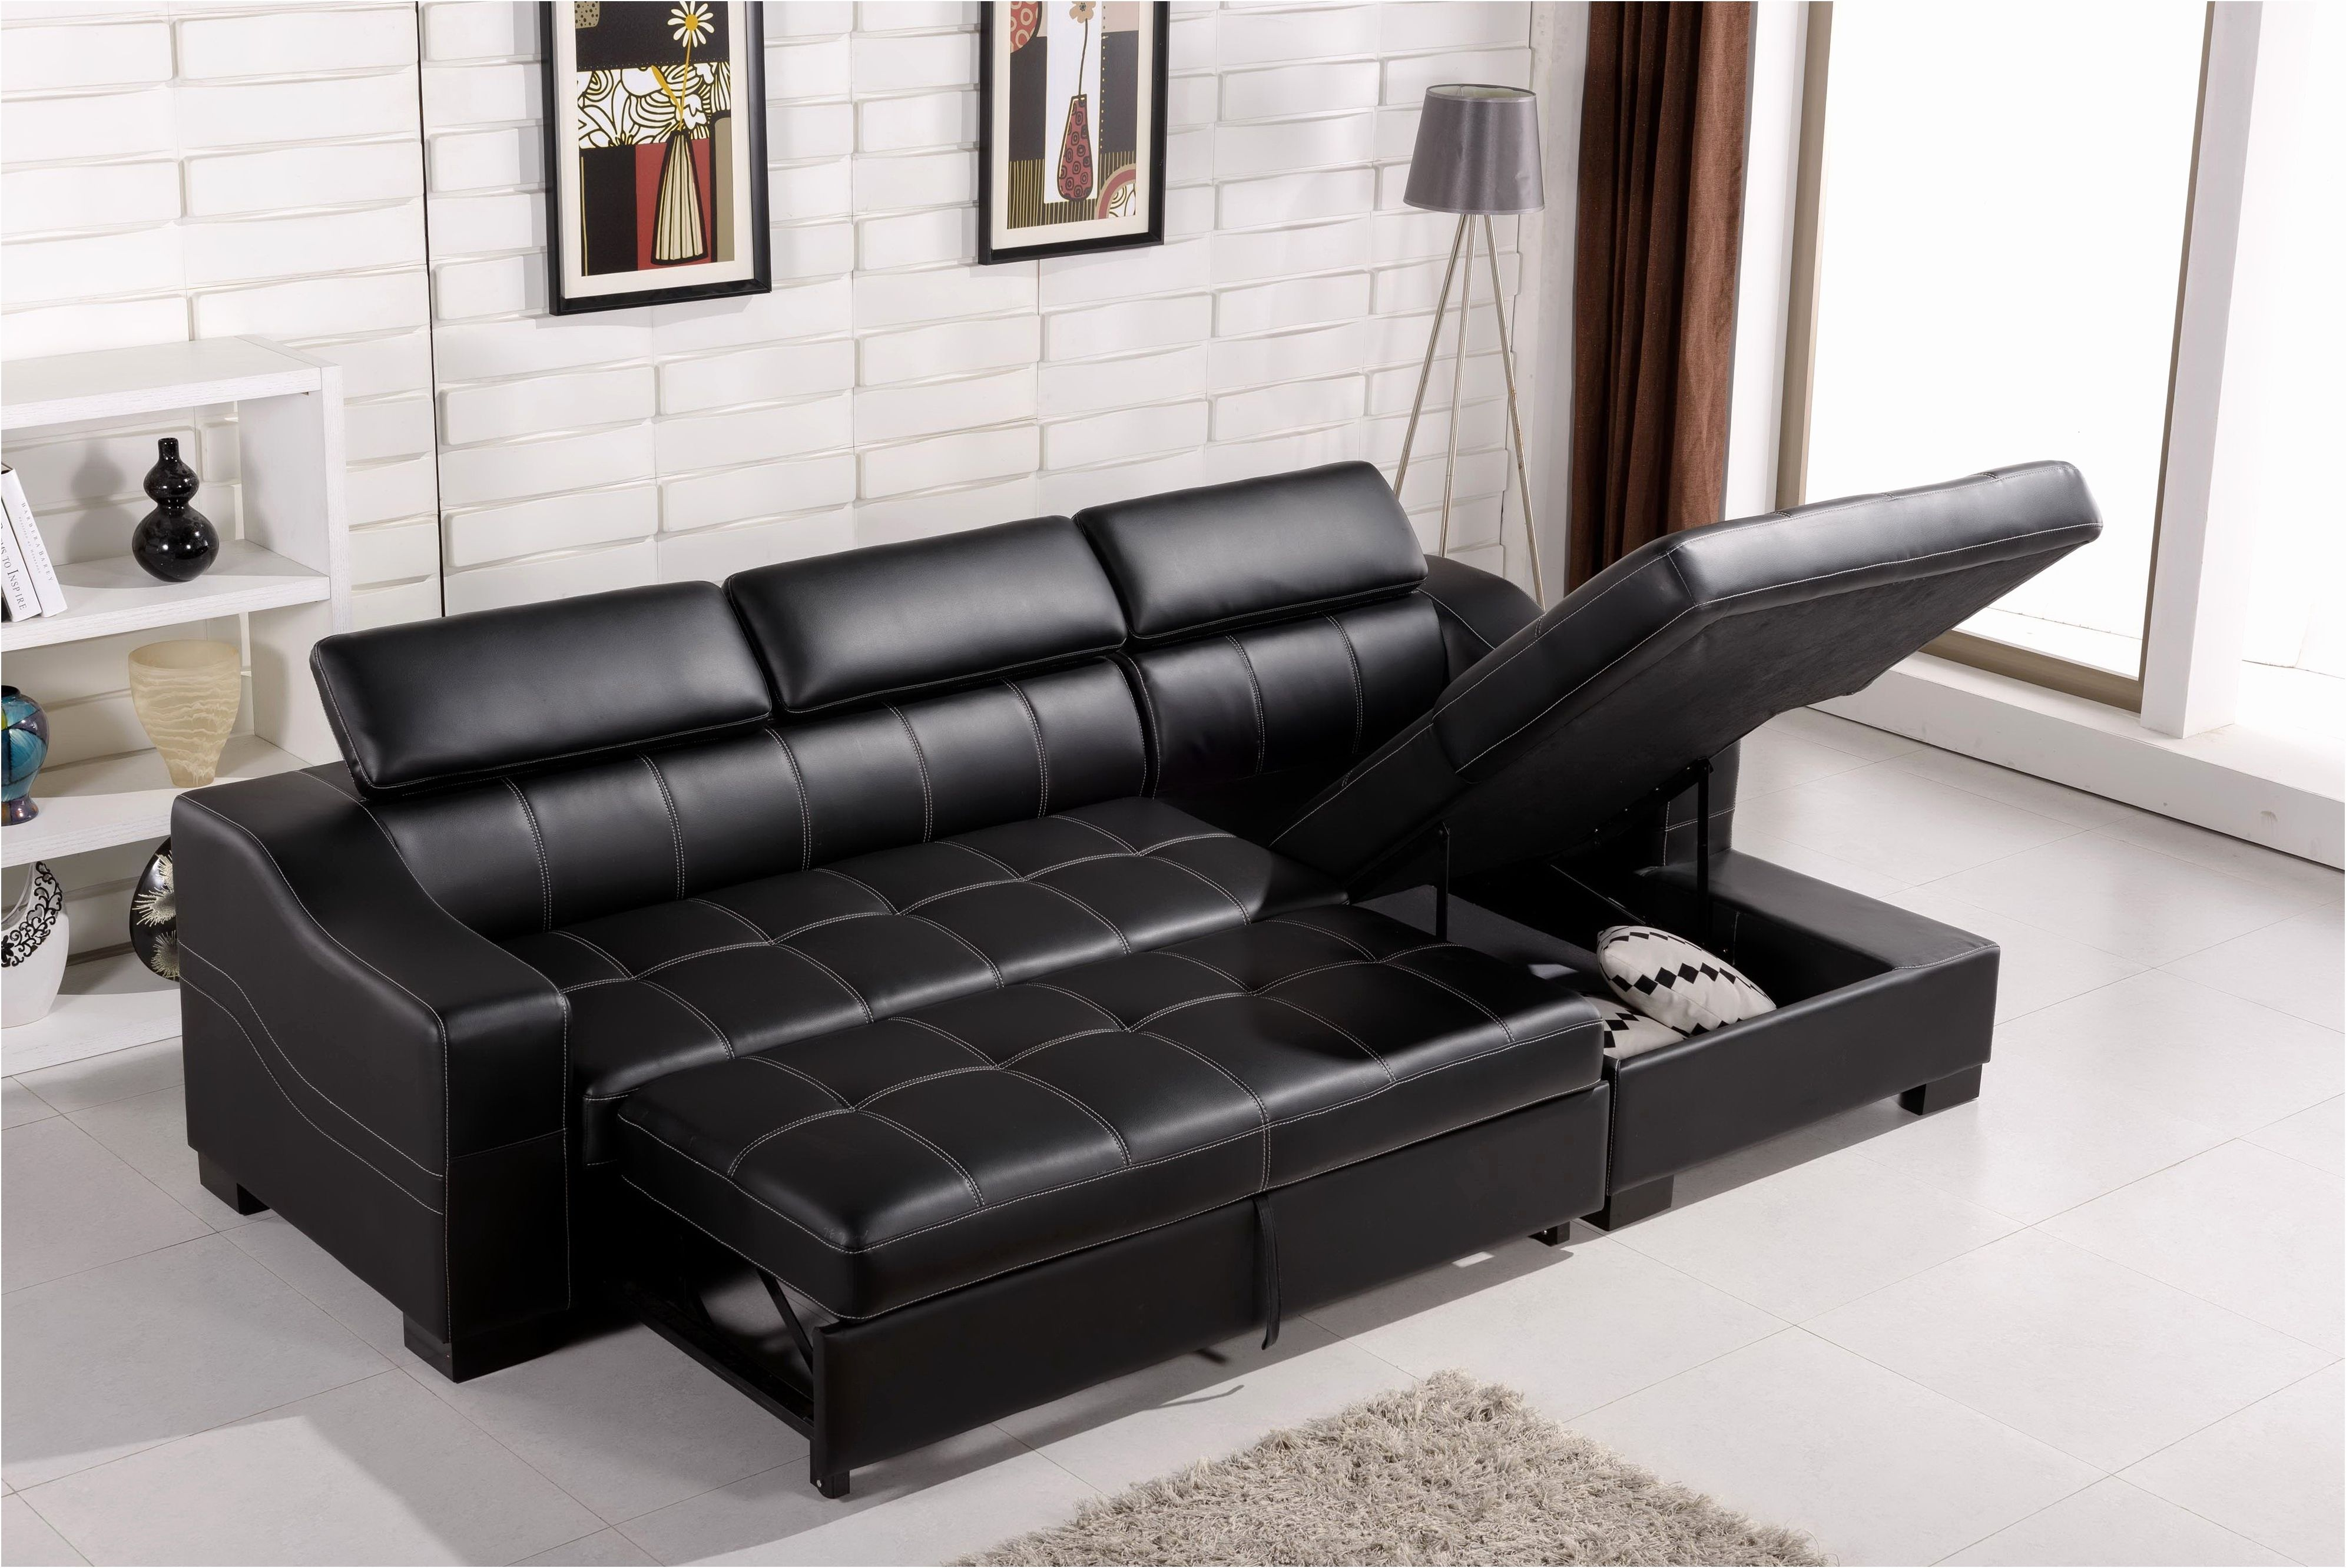 Ideas Modern Luxury Sofa Photos Fresh Bed With Storage For Bedroom The Decoras Jchansdesigns